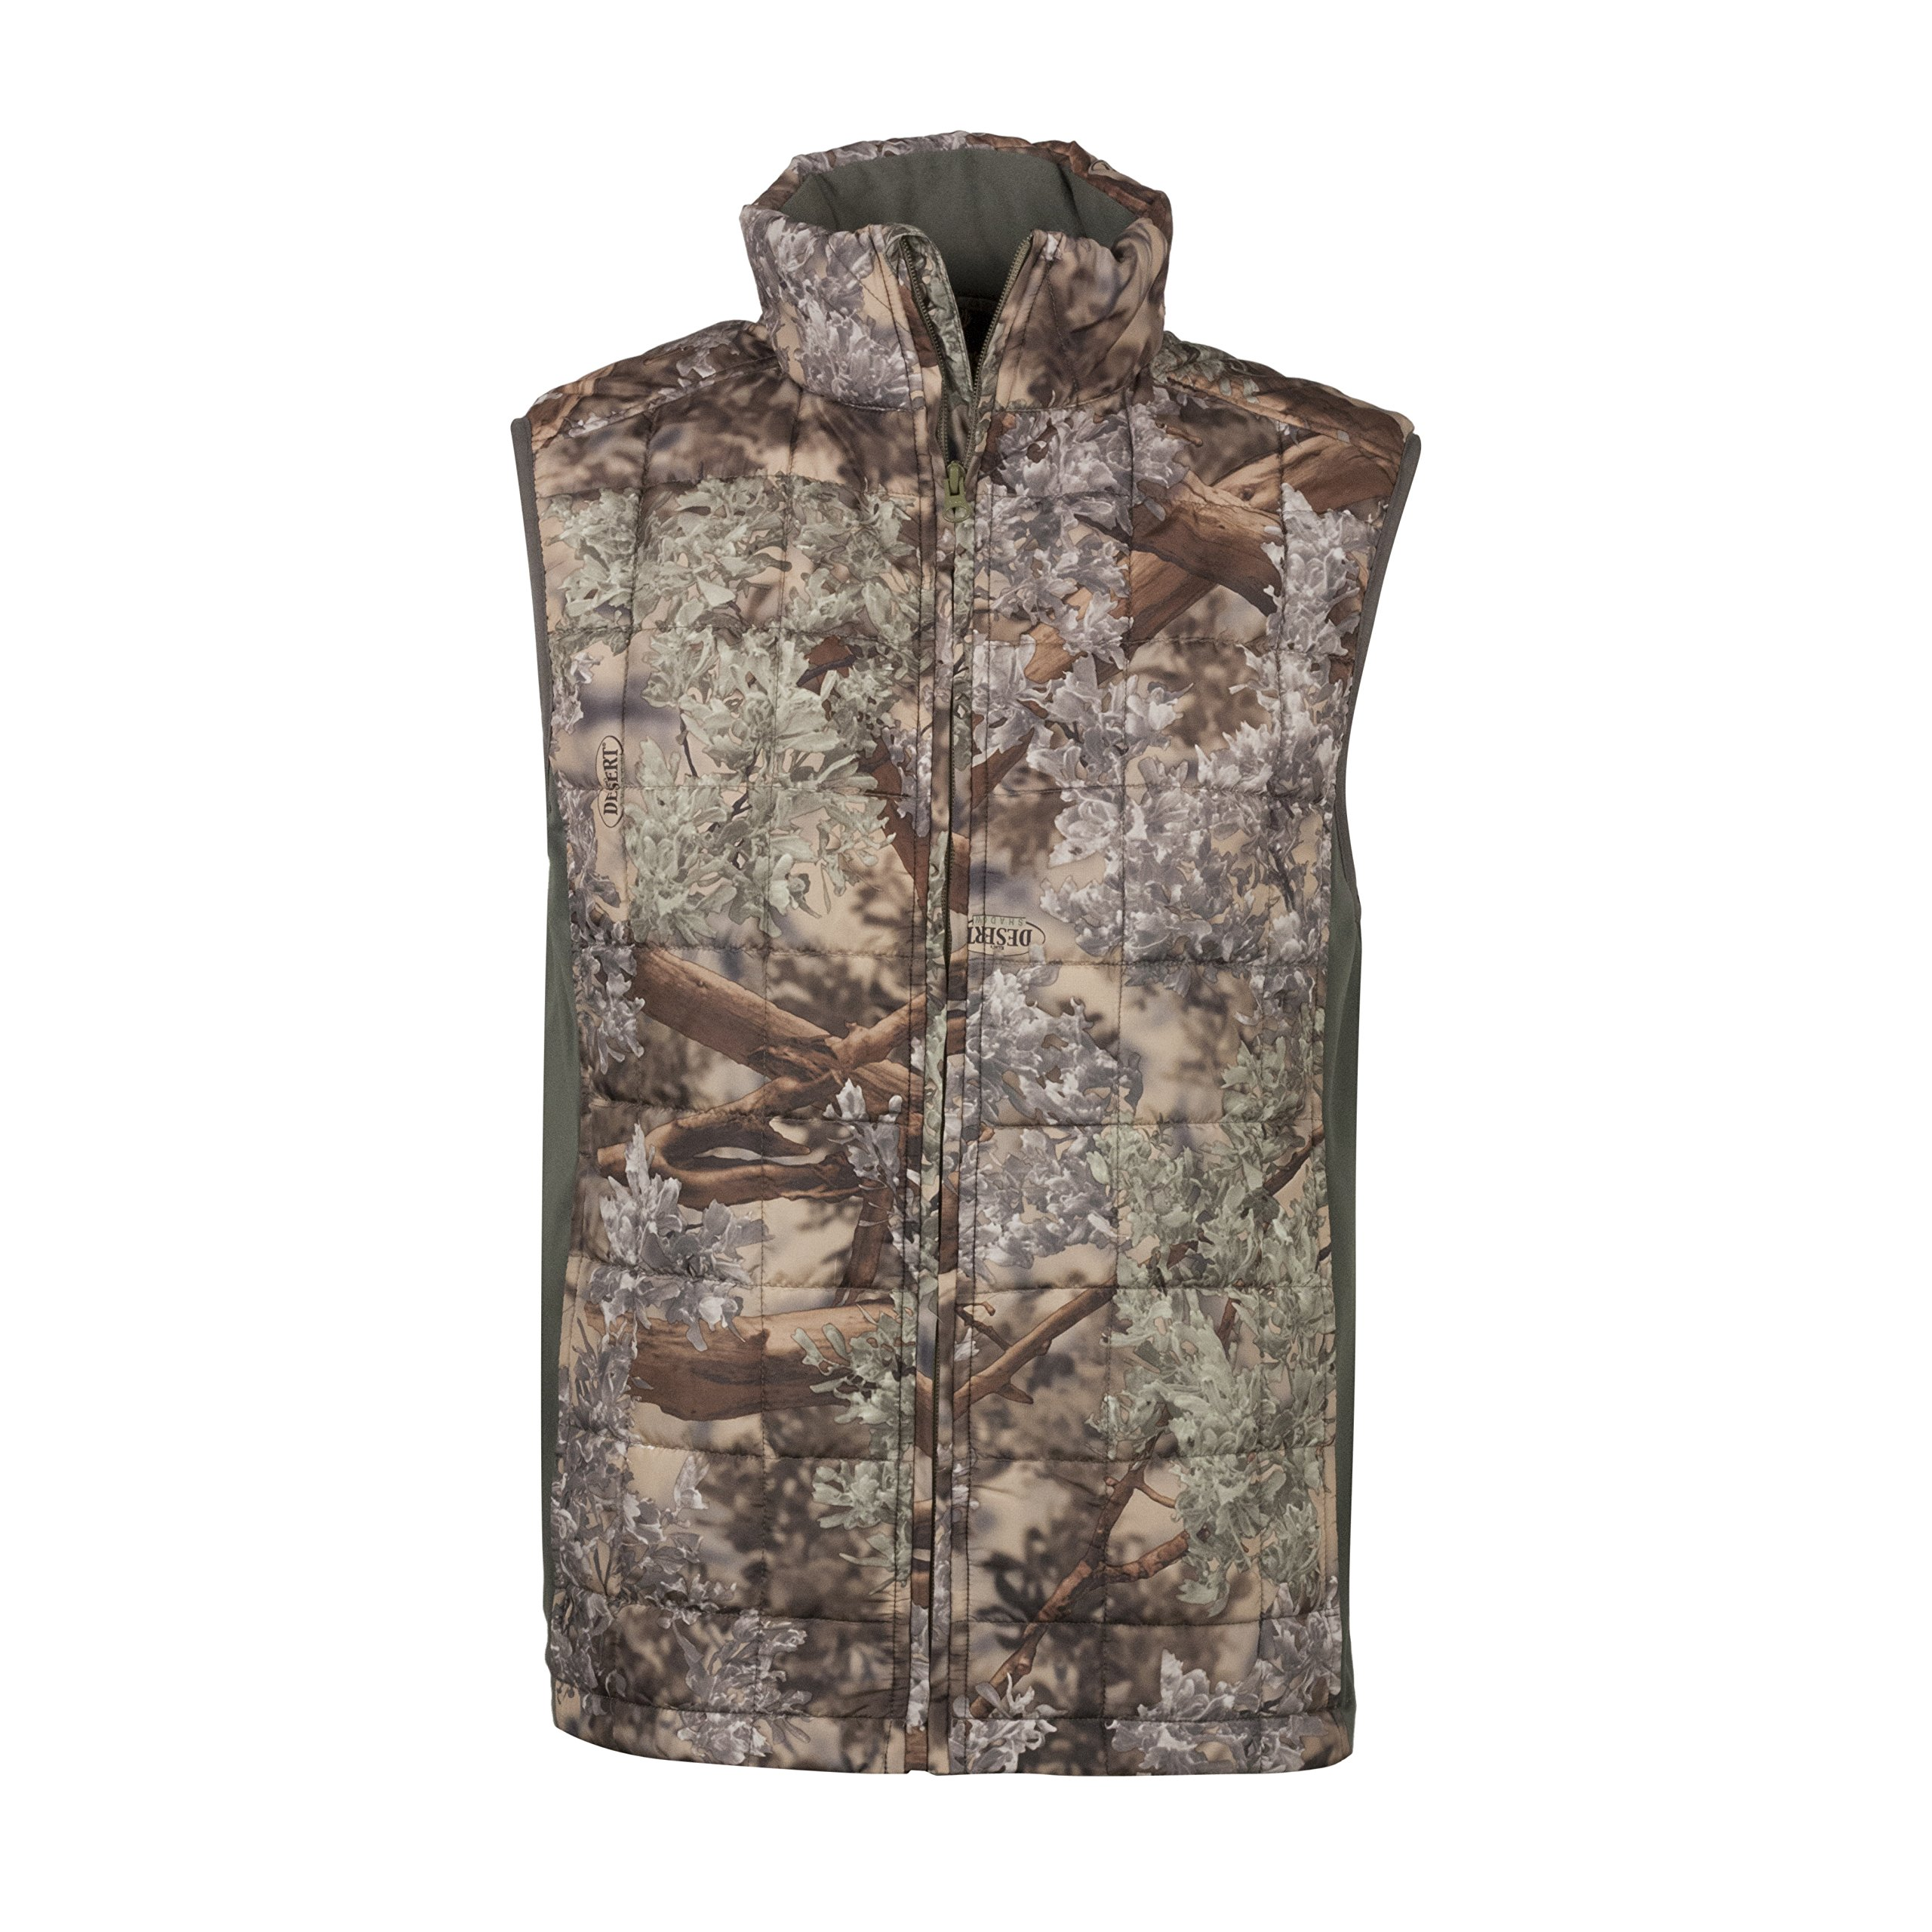 King's Camo XKG Transition Vest (Desert Shadow, X-Large) by King's Camo